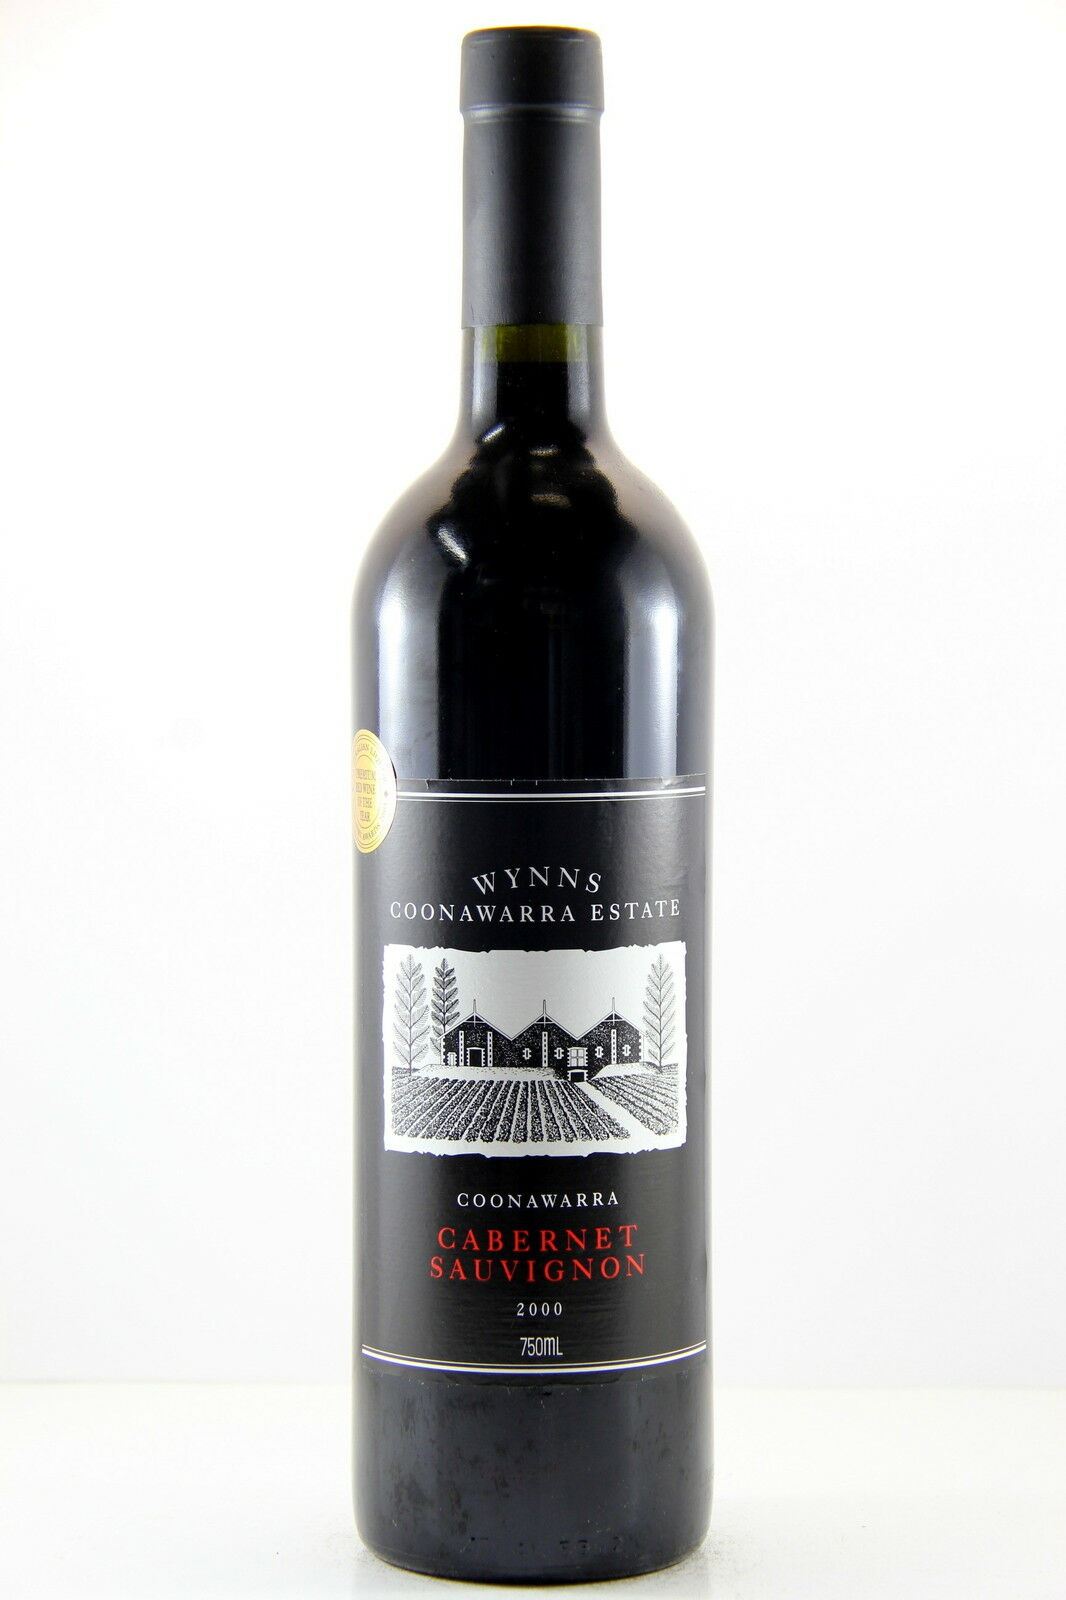 Wynns Black Label Cabernet Sauvignon 2000 Red Wine, Coonawarra